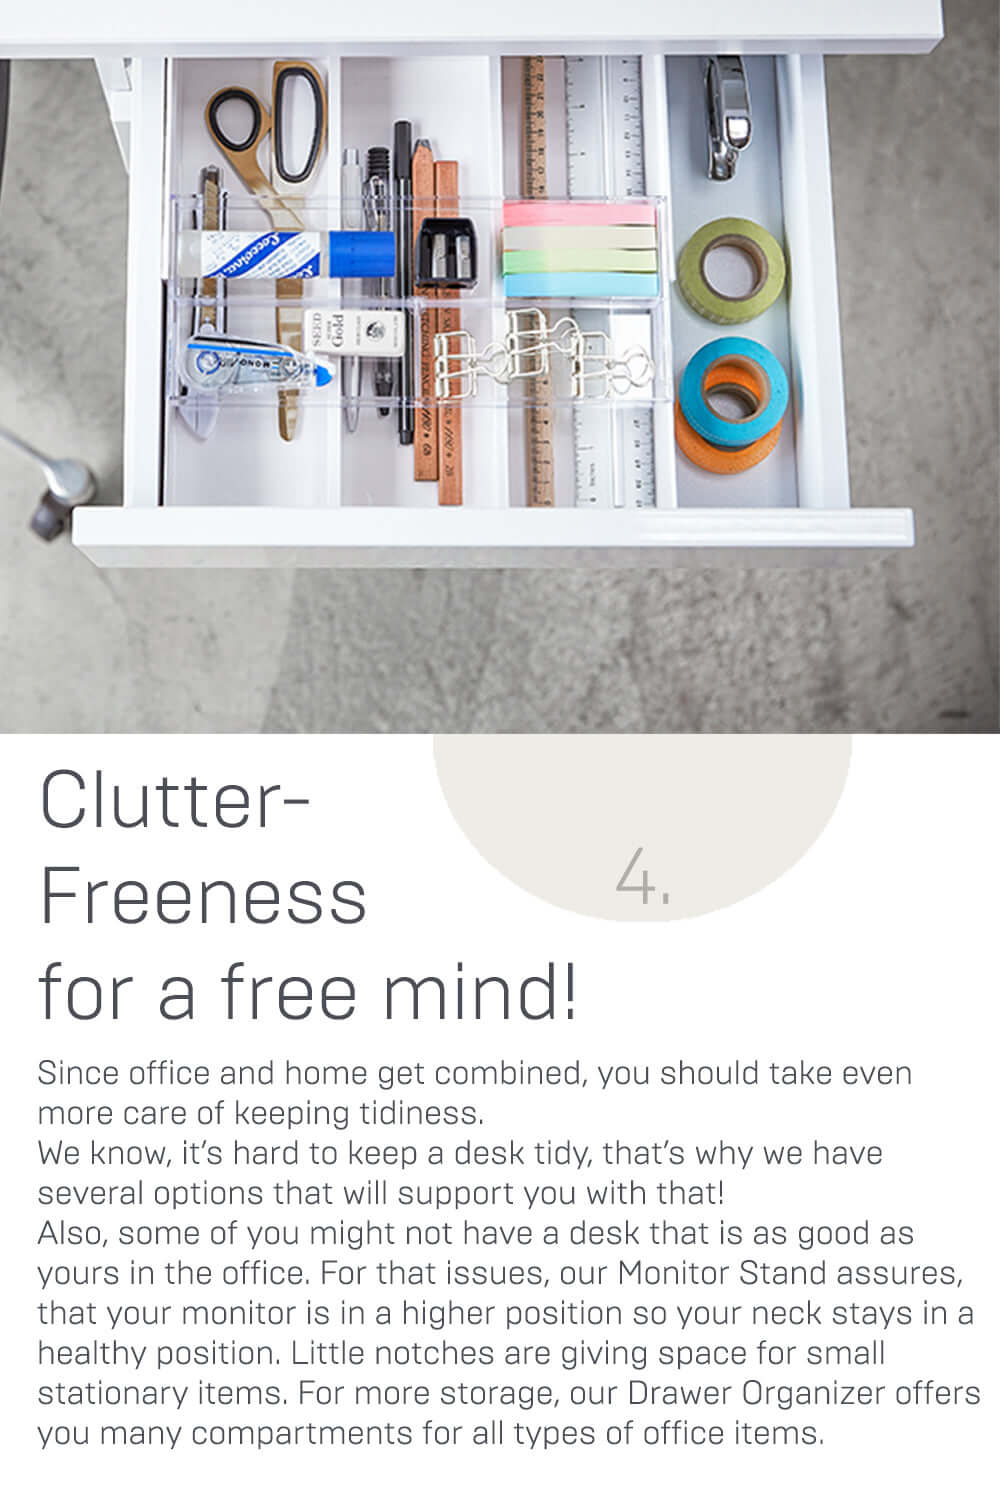 Clutter-Freeness for a free mind!